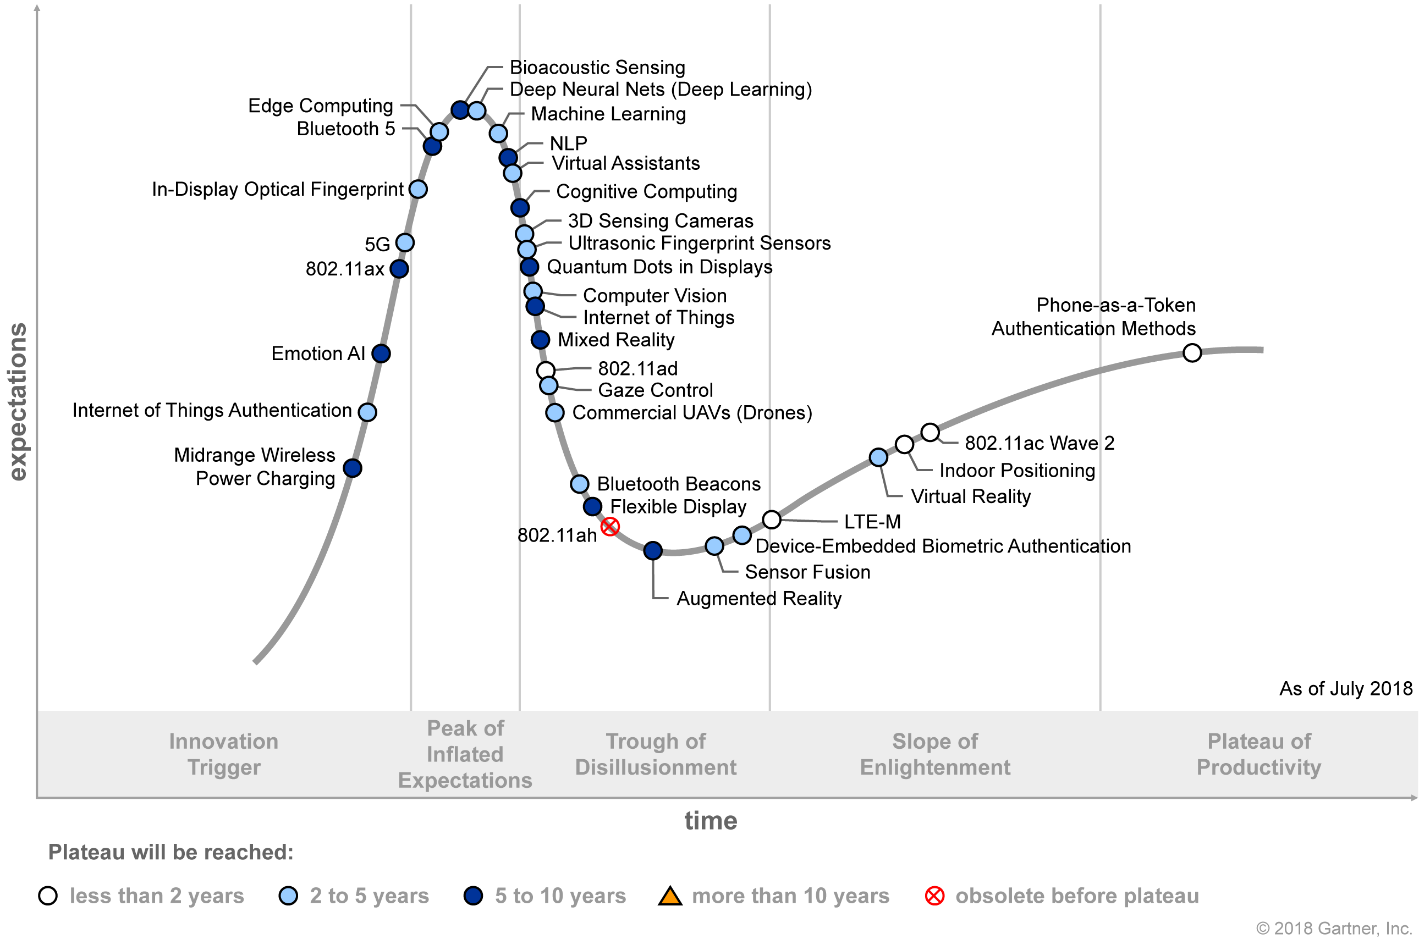 Gartner Hype Cycle for Mobile Device Technologies 2018 (G00340118)